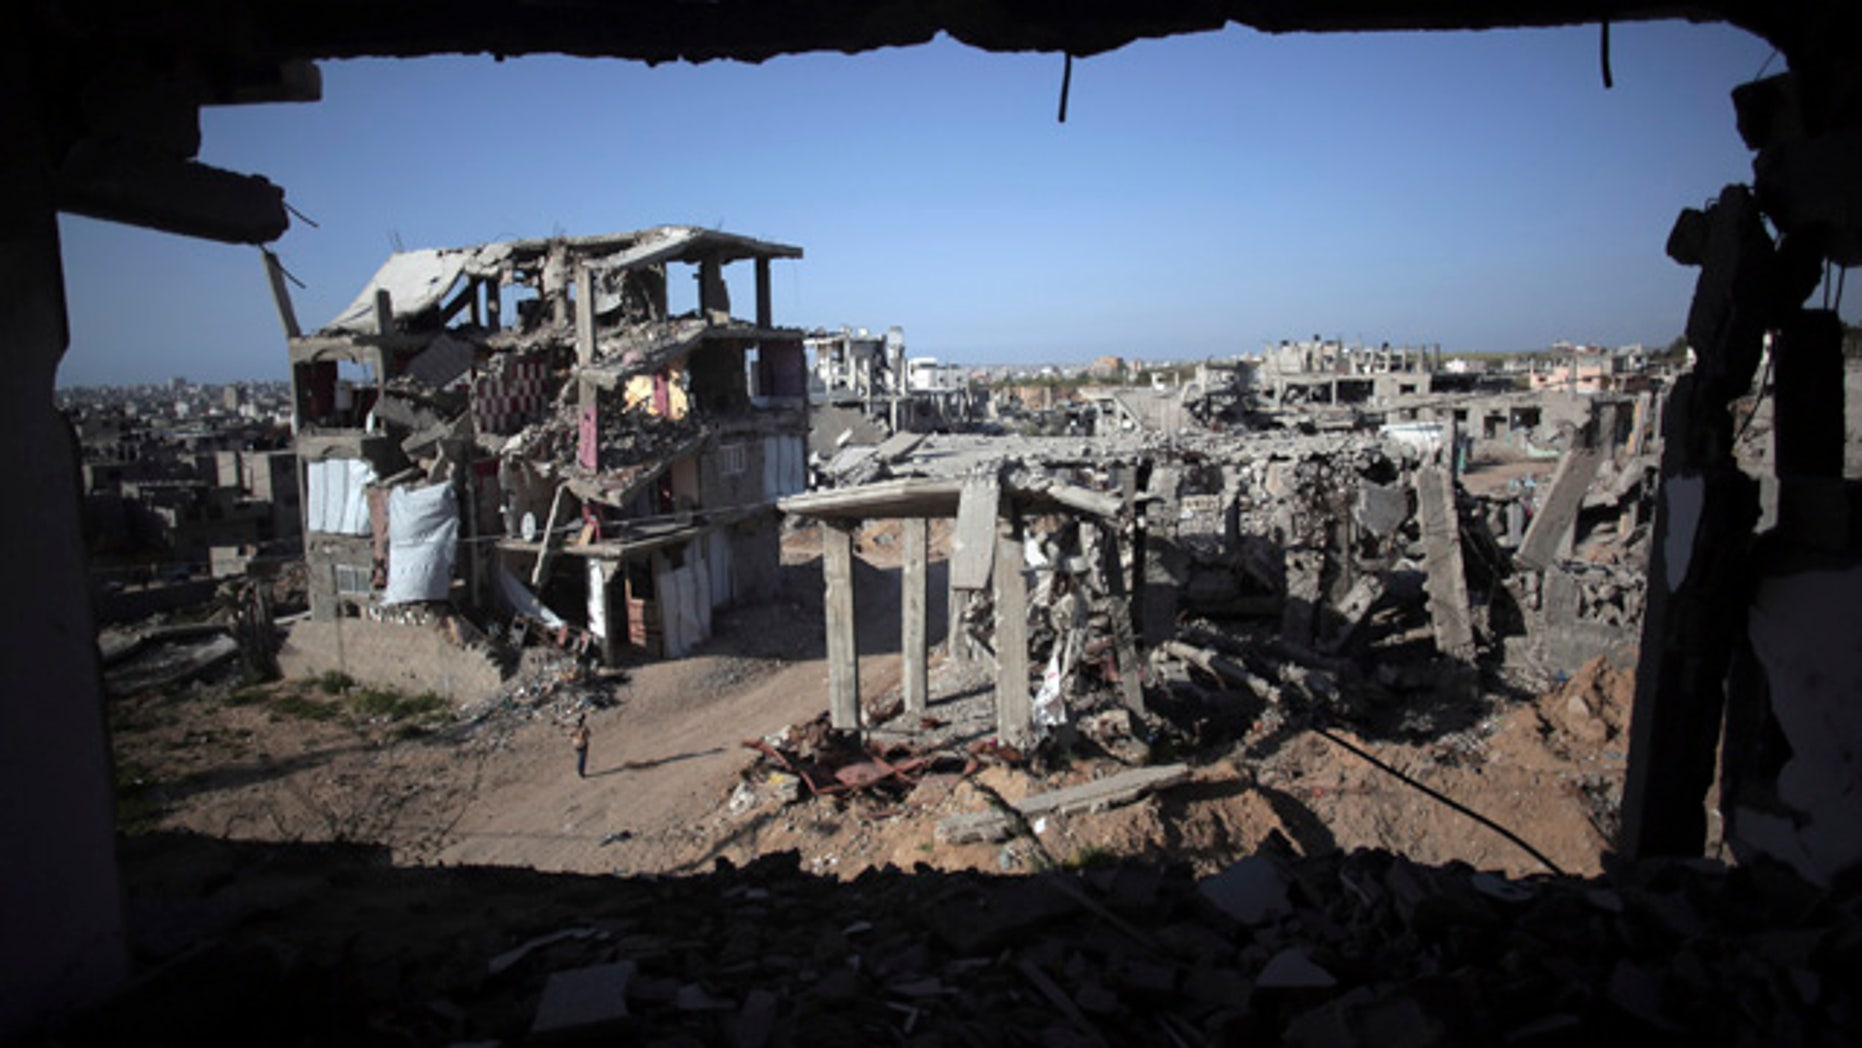 File - In this March 30, 2015 file photo, a Palestinian girl walks next to destroyed houses, in the Shijaiyah neighborhood of Gaza City. (AP Photo/Khalil Hamra, File)